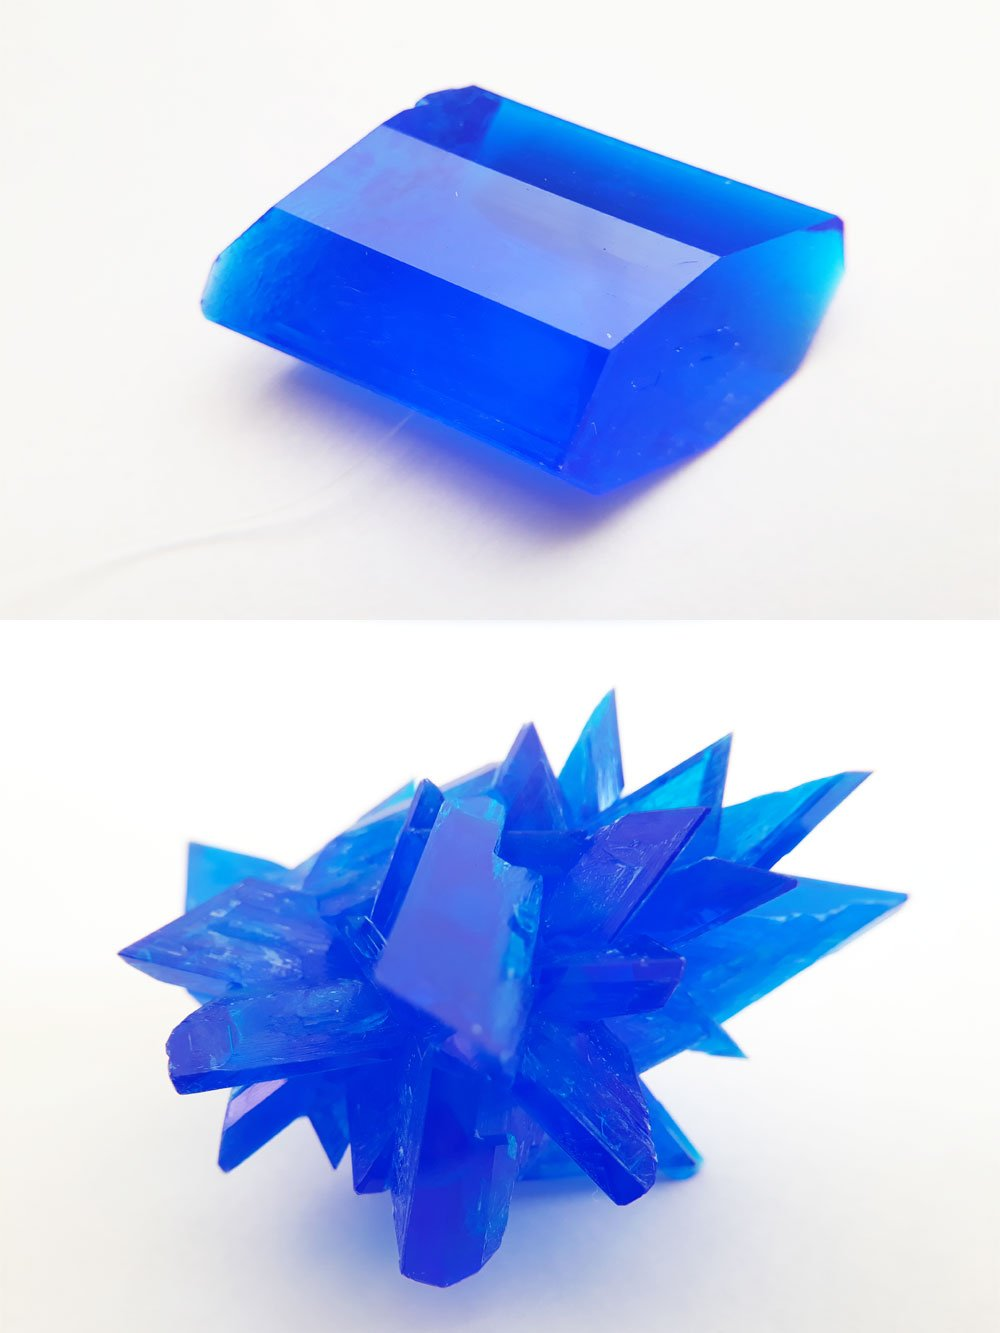 Comparison between copper sulfate single crystal and crystal cluster